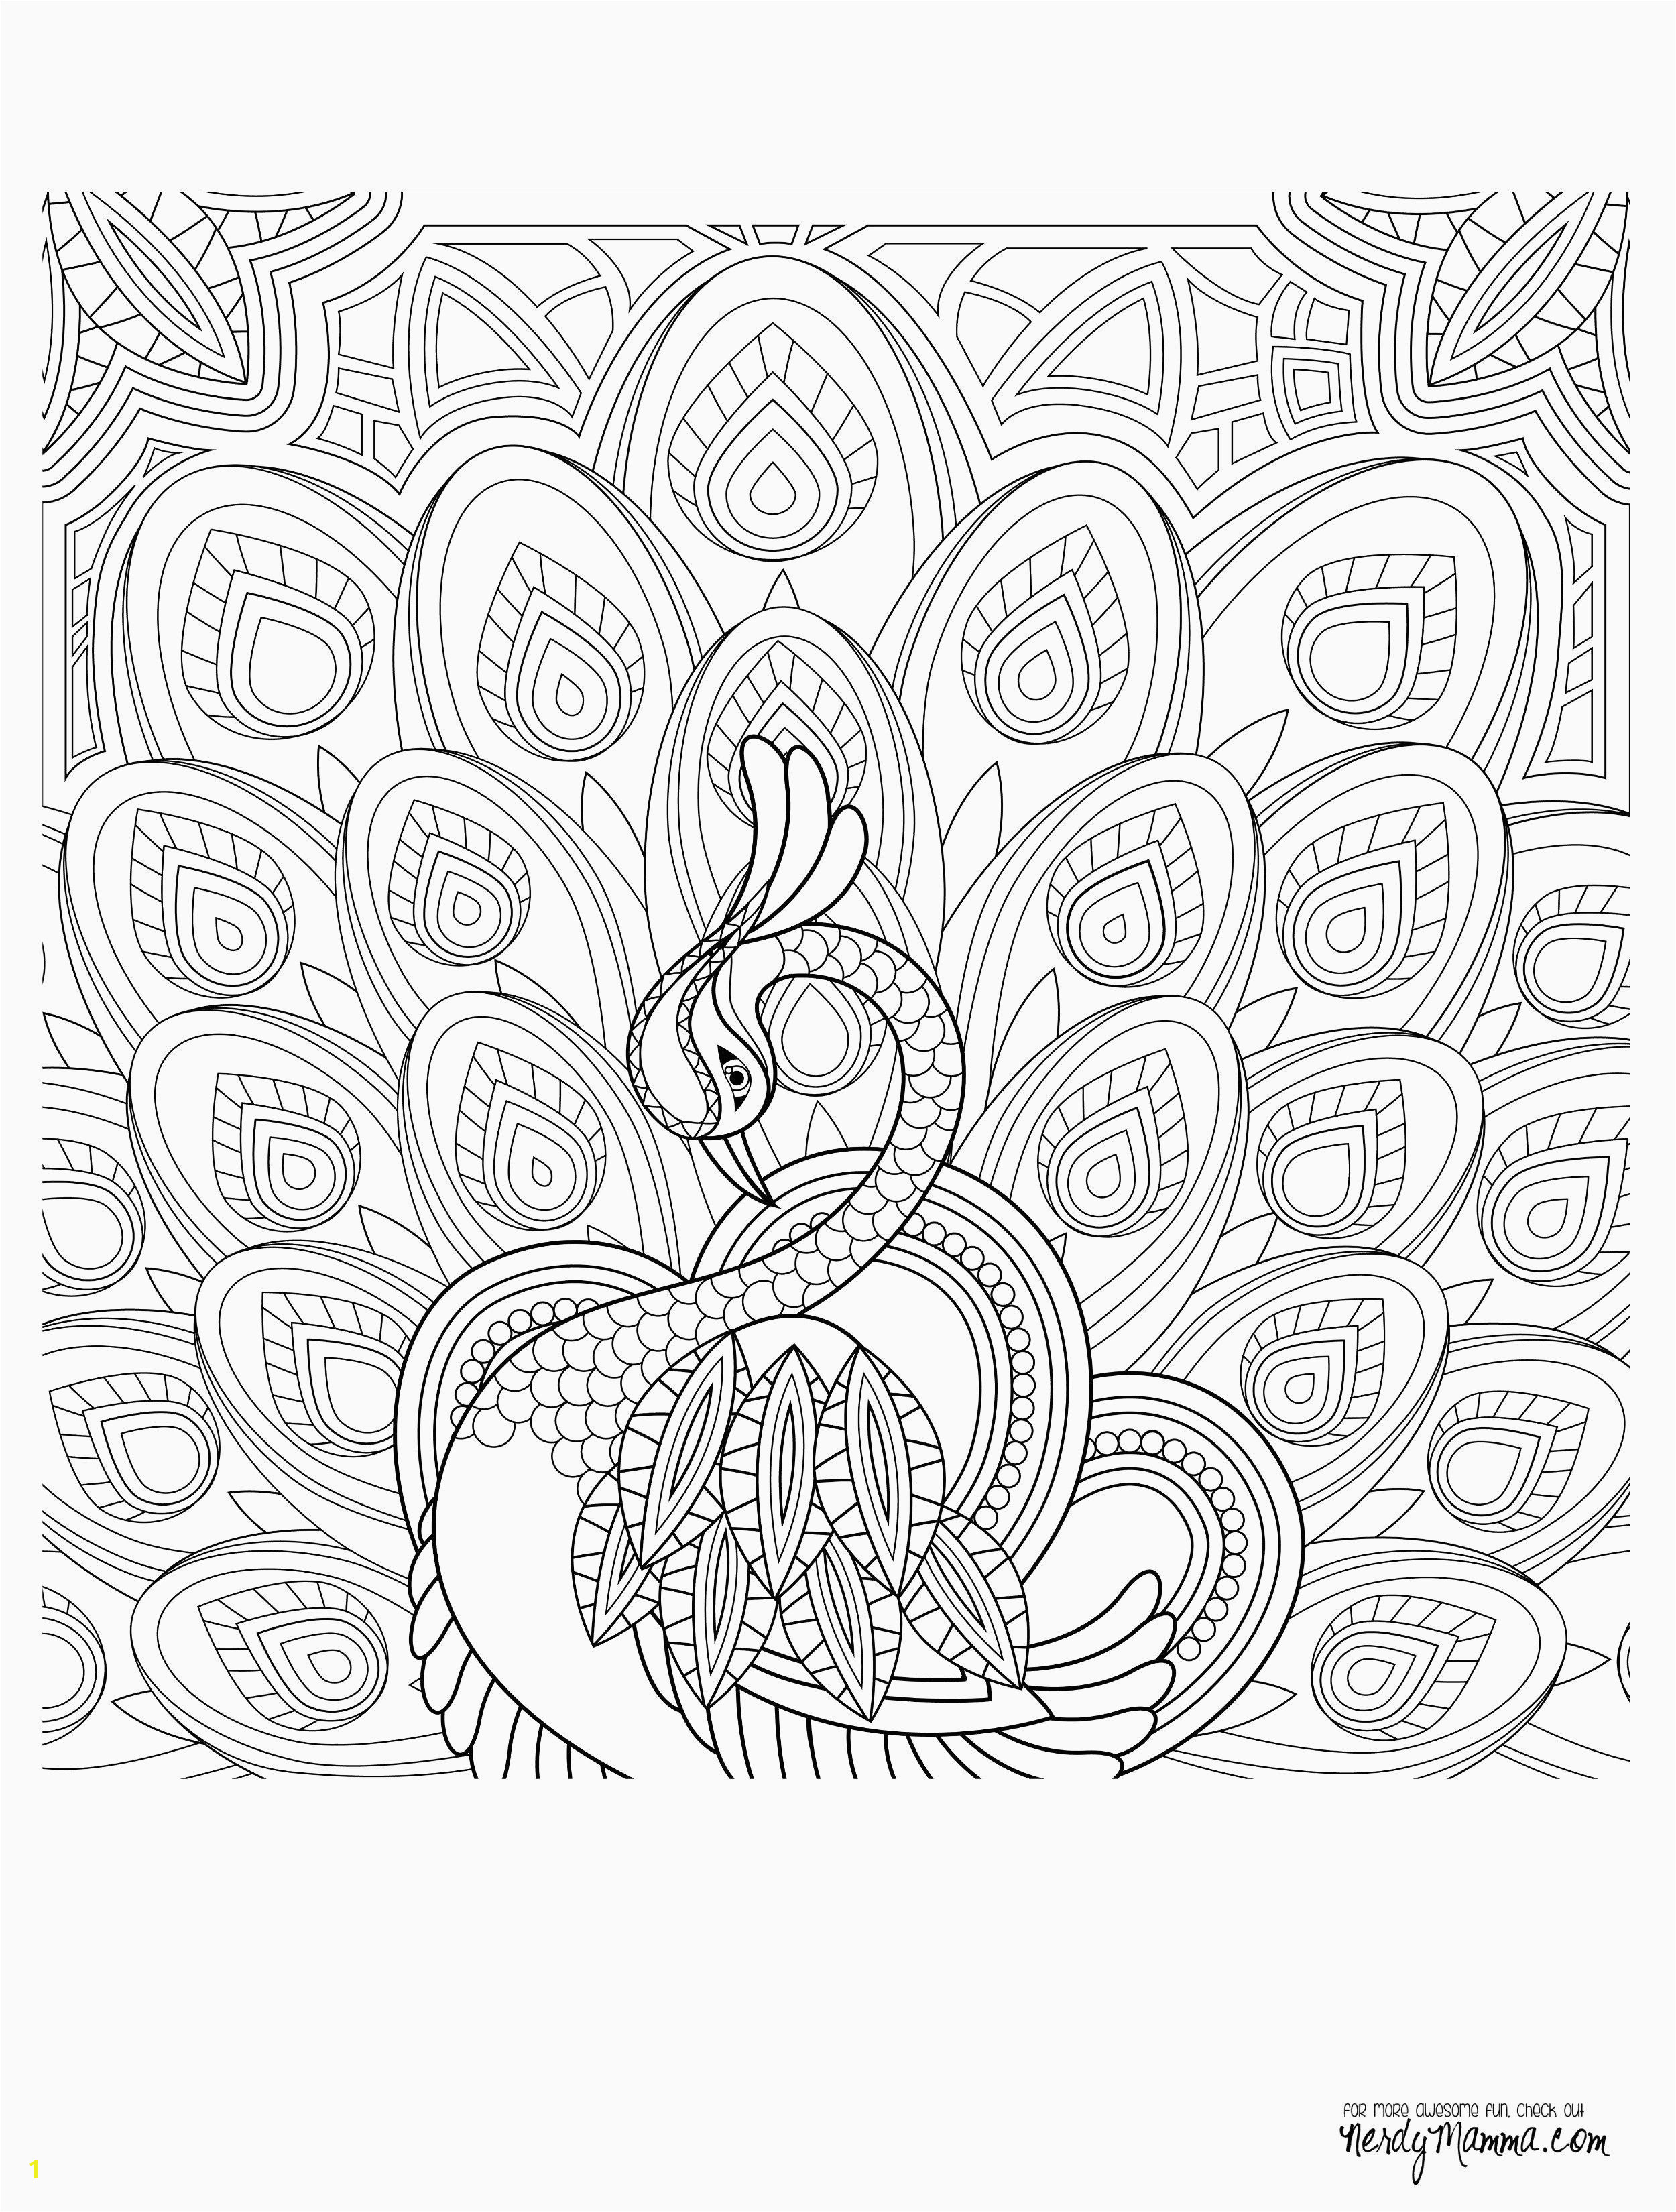 Intricate Mandala Coloring Pages Free Printable Coloring Pages for Adults Best Awesome Coloring Page for